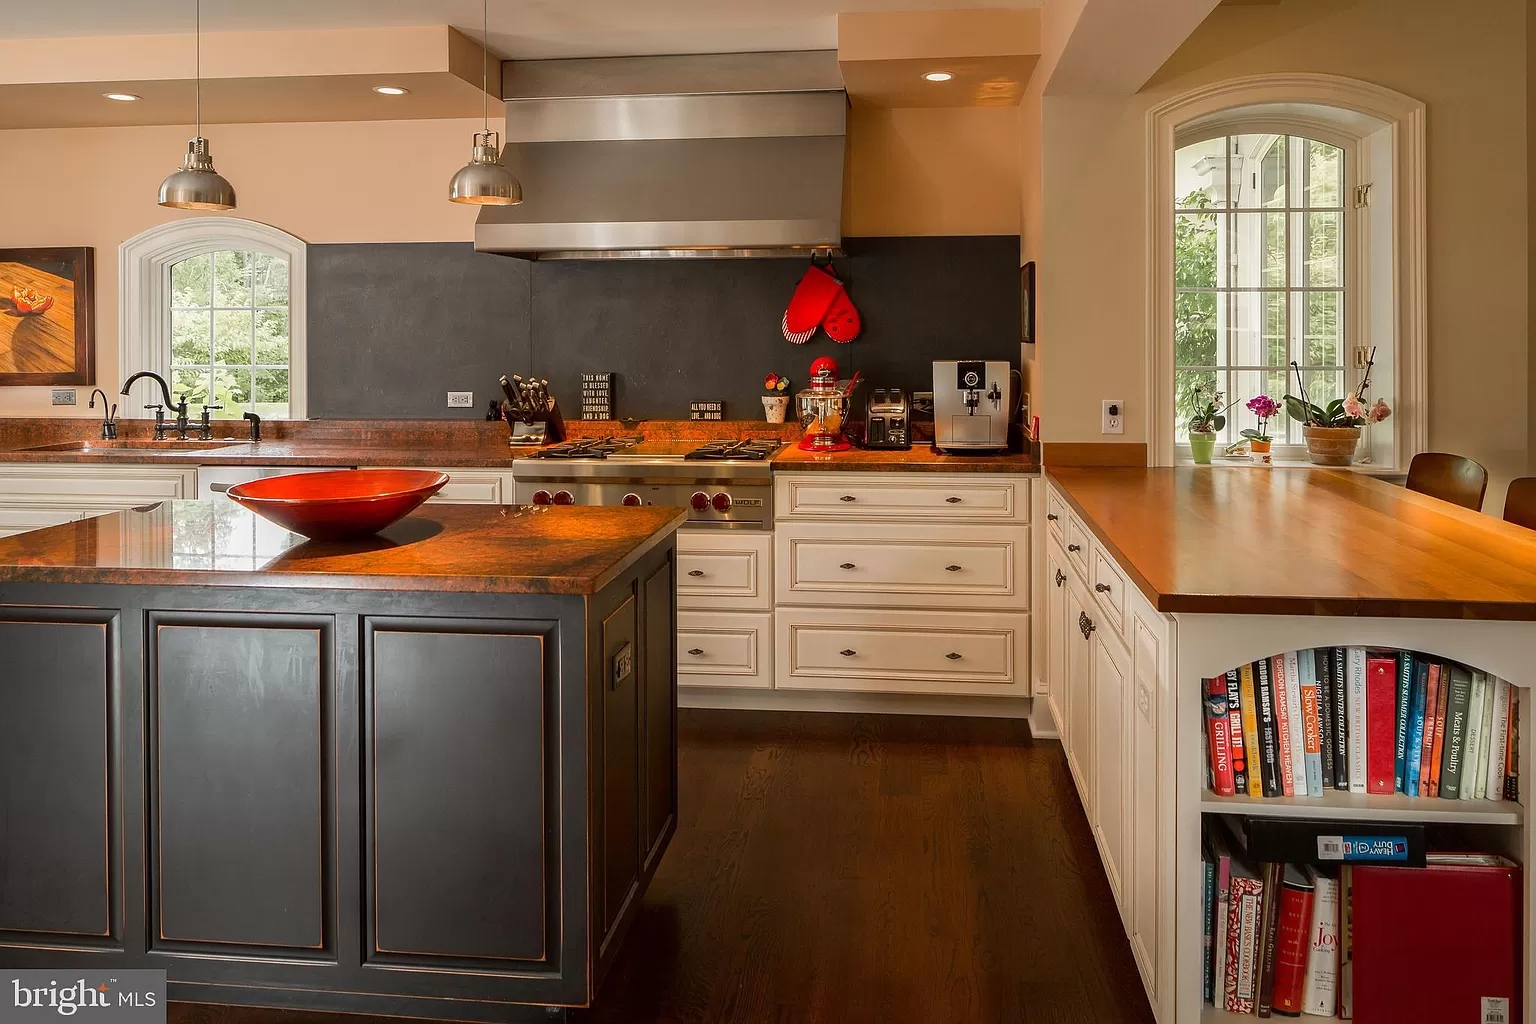 Pictures of Kitchen Islands